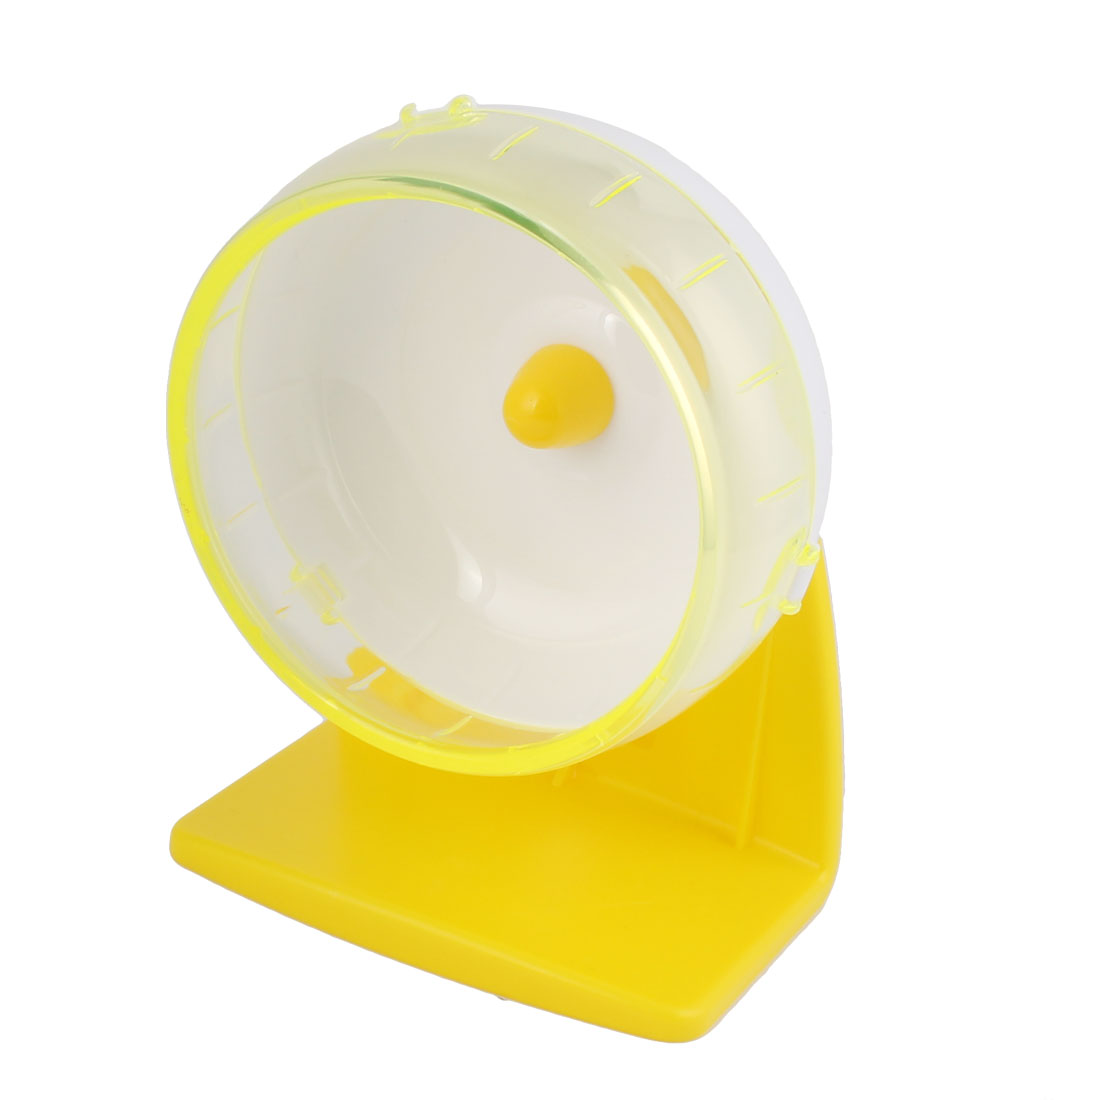 Pet Hamster Plastic Play Stand Wheel Toy Yellow 11cm Diameter w Suction Cup